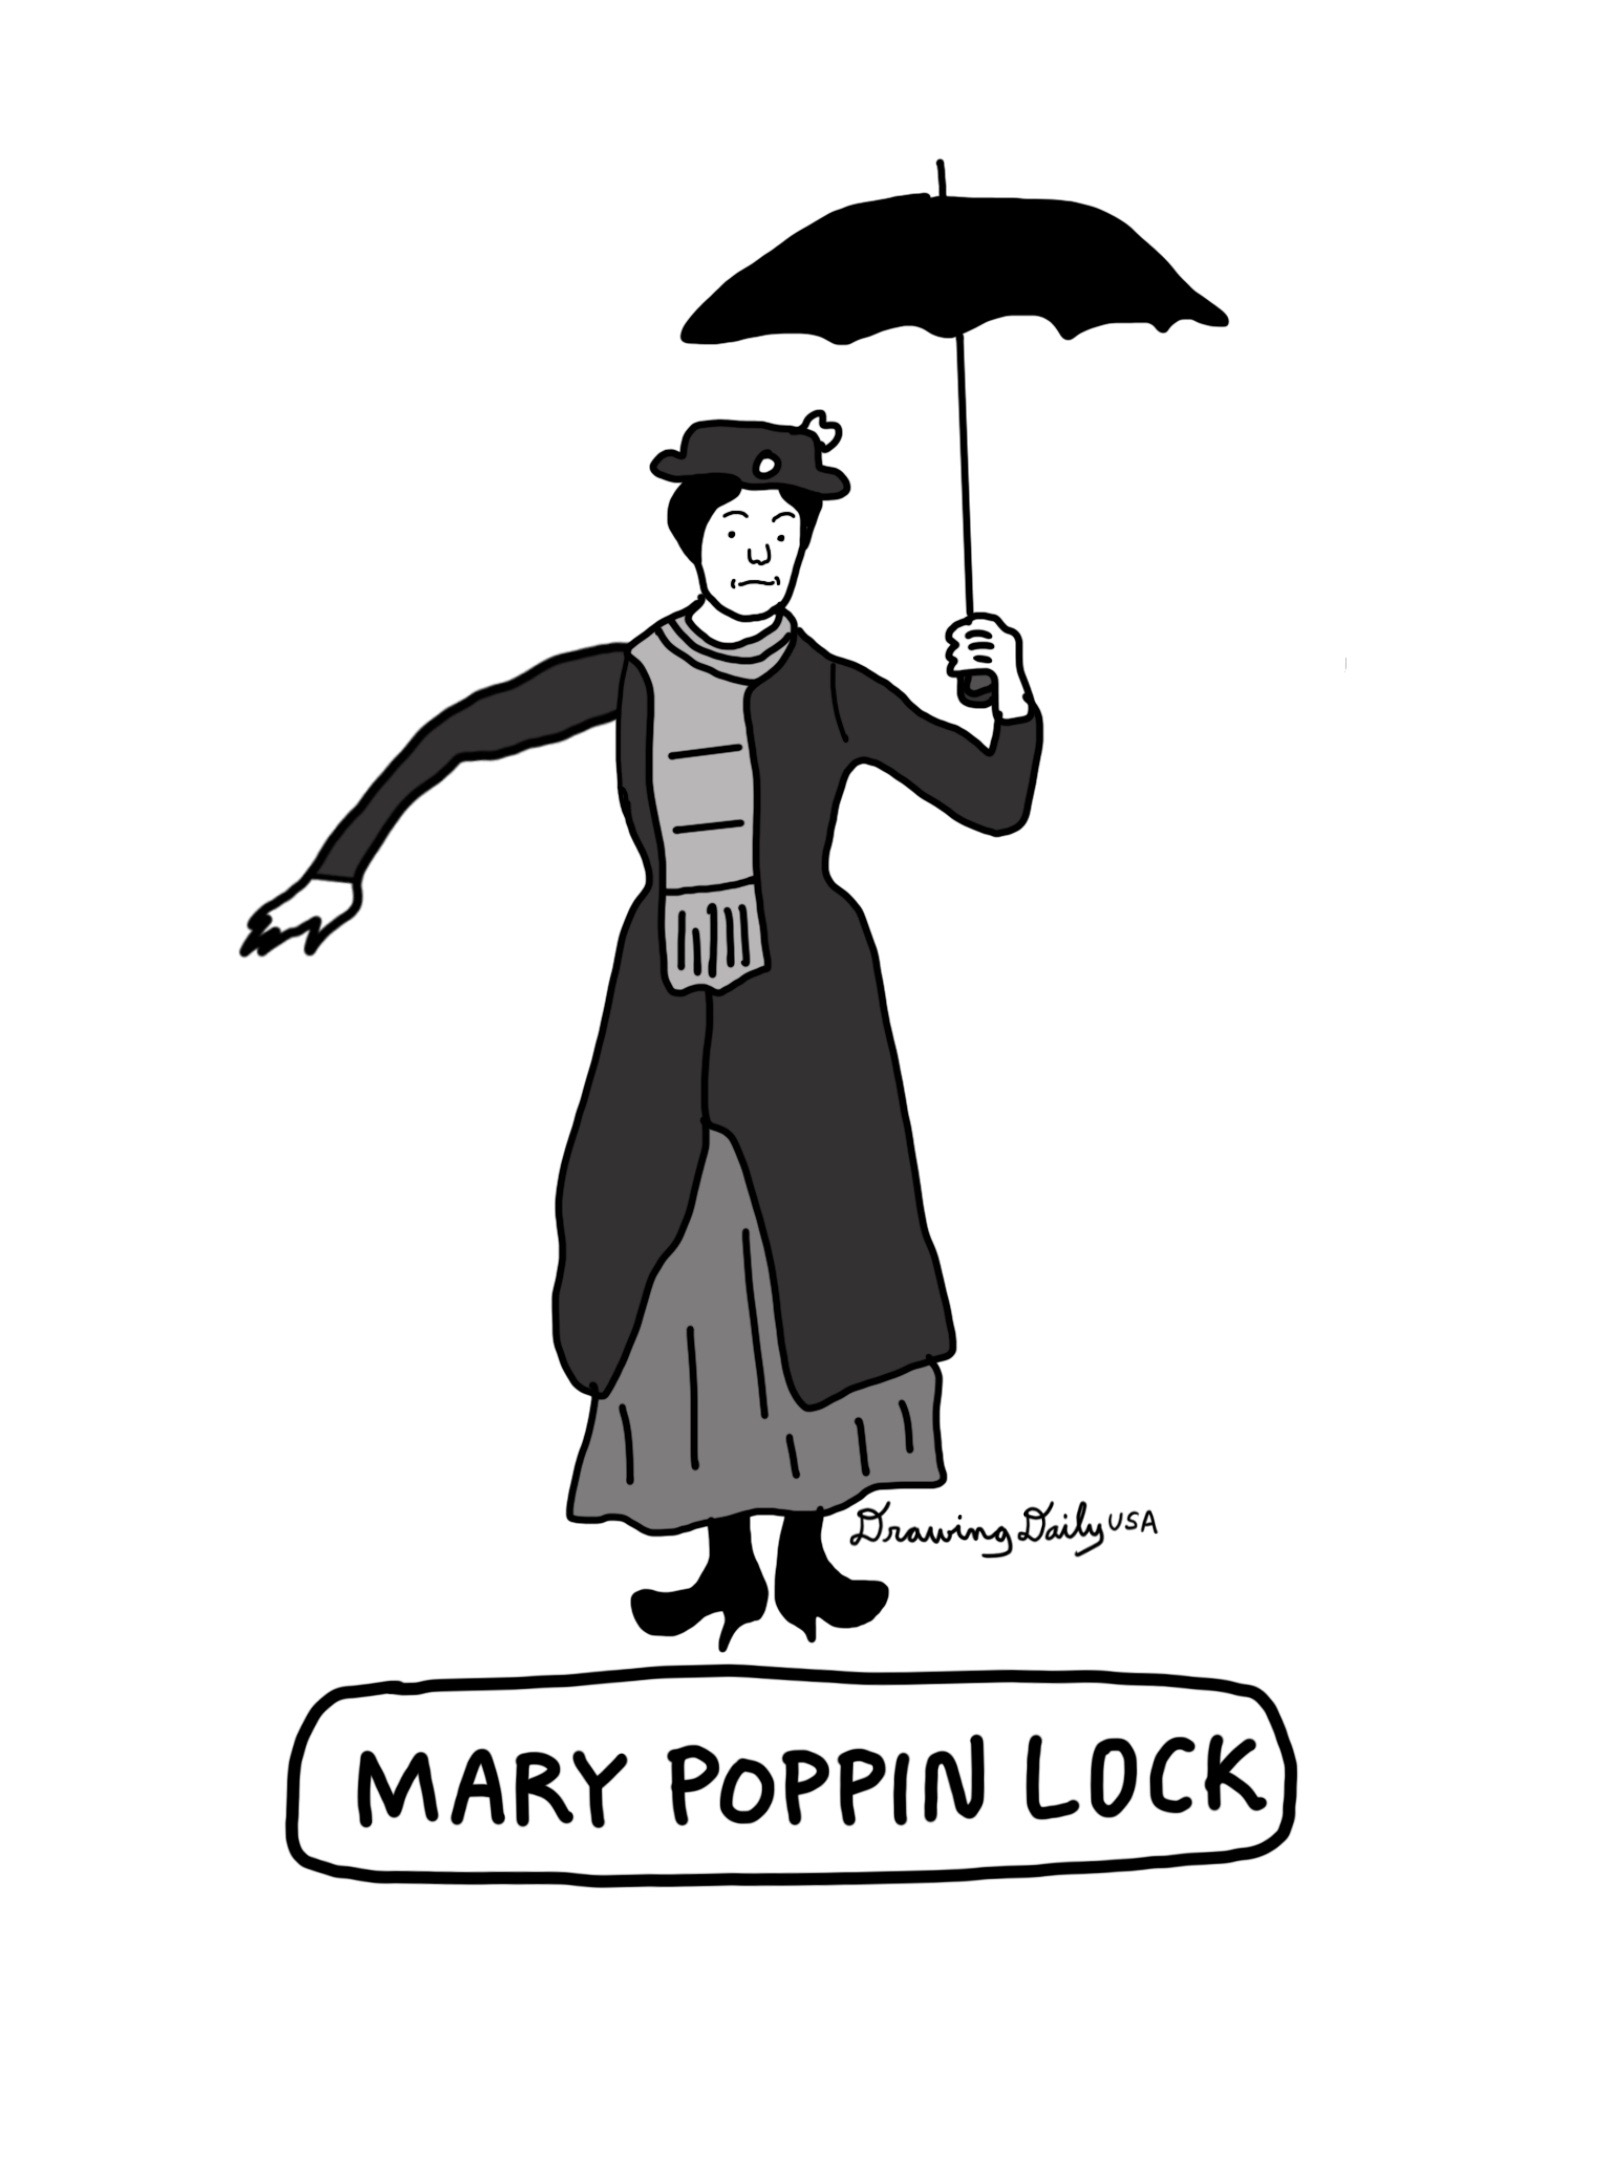 Mary Poppin Lock